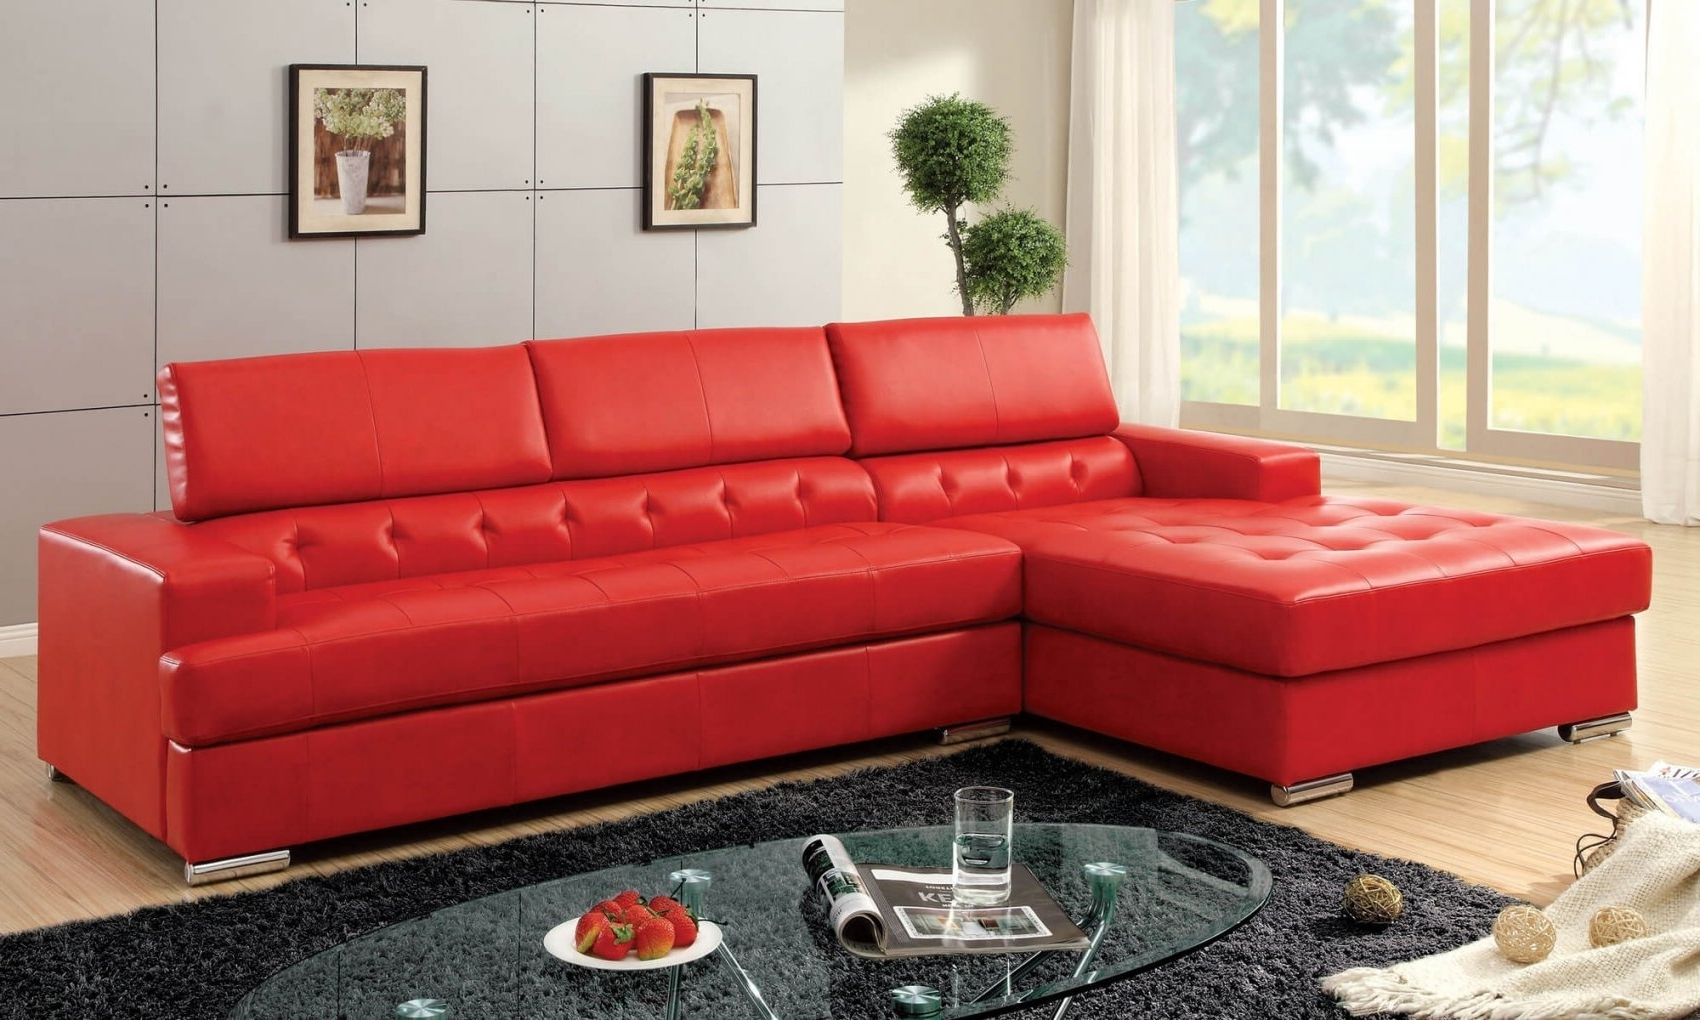 Red Leather Sectional Sofa Contemporary – Best Sectional In Throughout Fashionable Red Sectional Sofas With Ottoman (View 13 of 20)